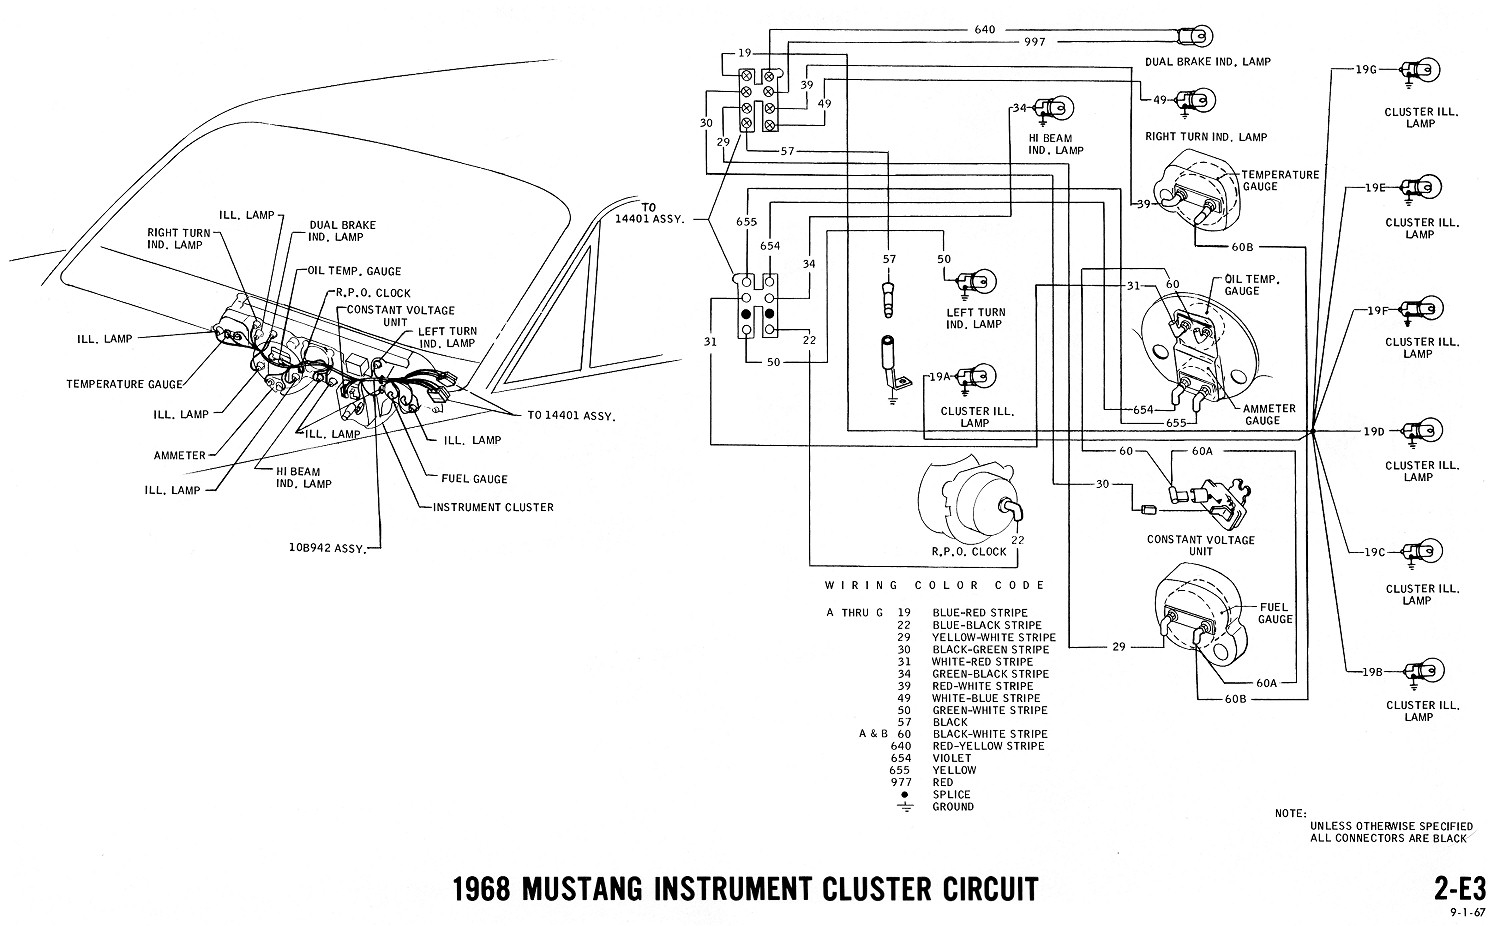 1968 Mustang Wiring Diagrams besides 493 besides Free Venn Diagram Generator Venn Diagram Graphic 02   Wire as well 388fz0 likewise House Blueprint Electrical Symbols. on wiring symbols